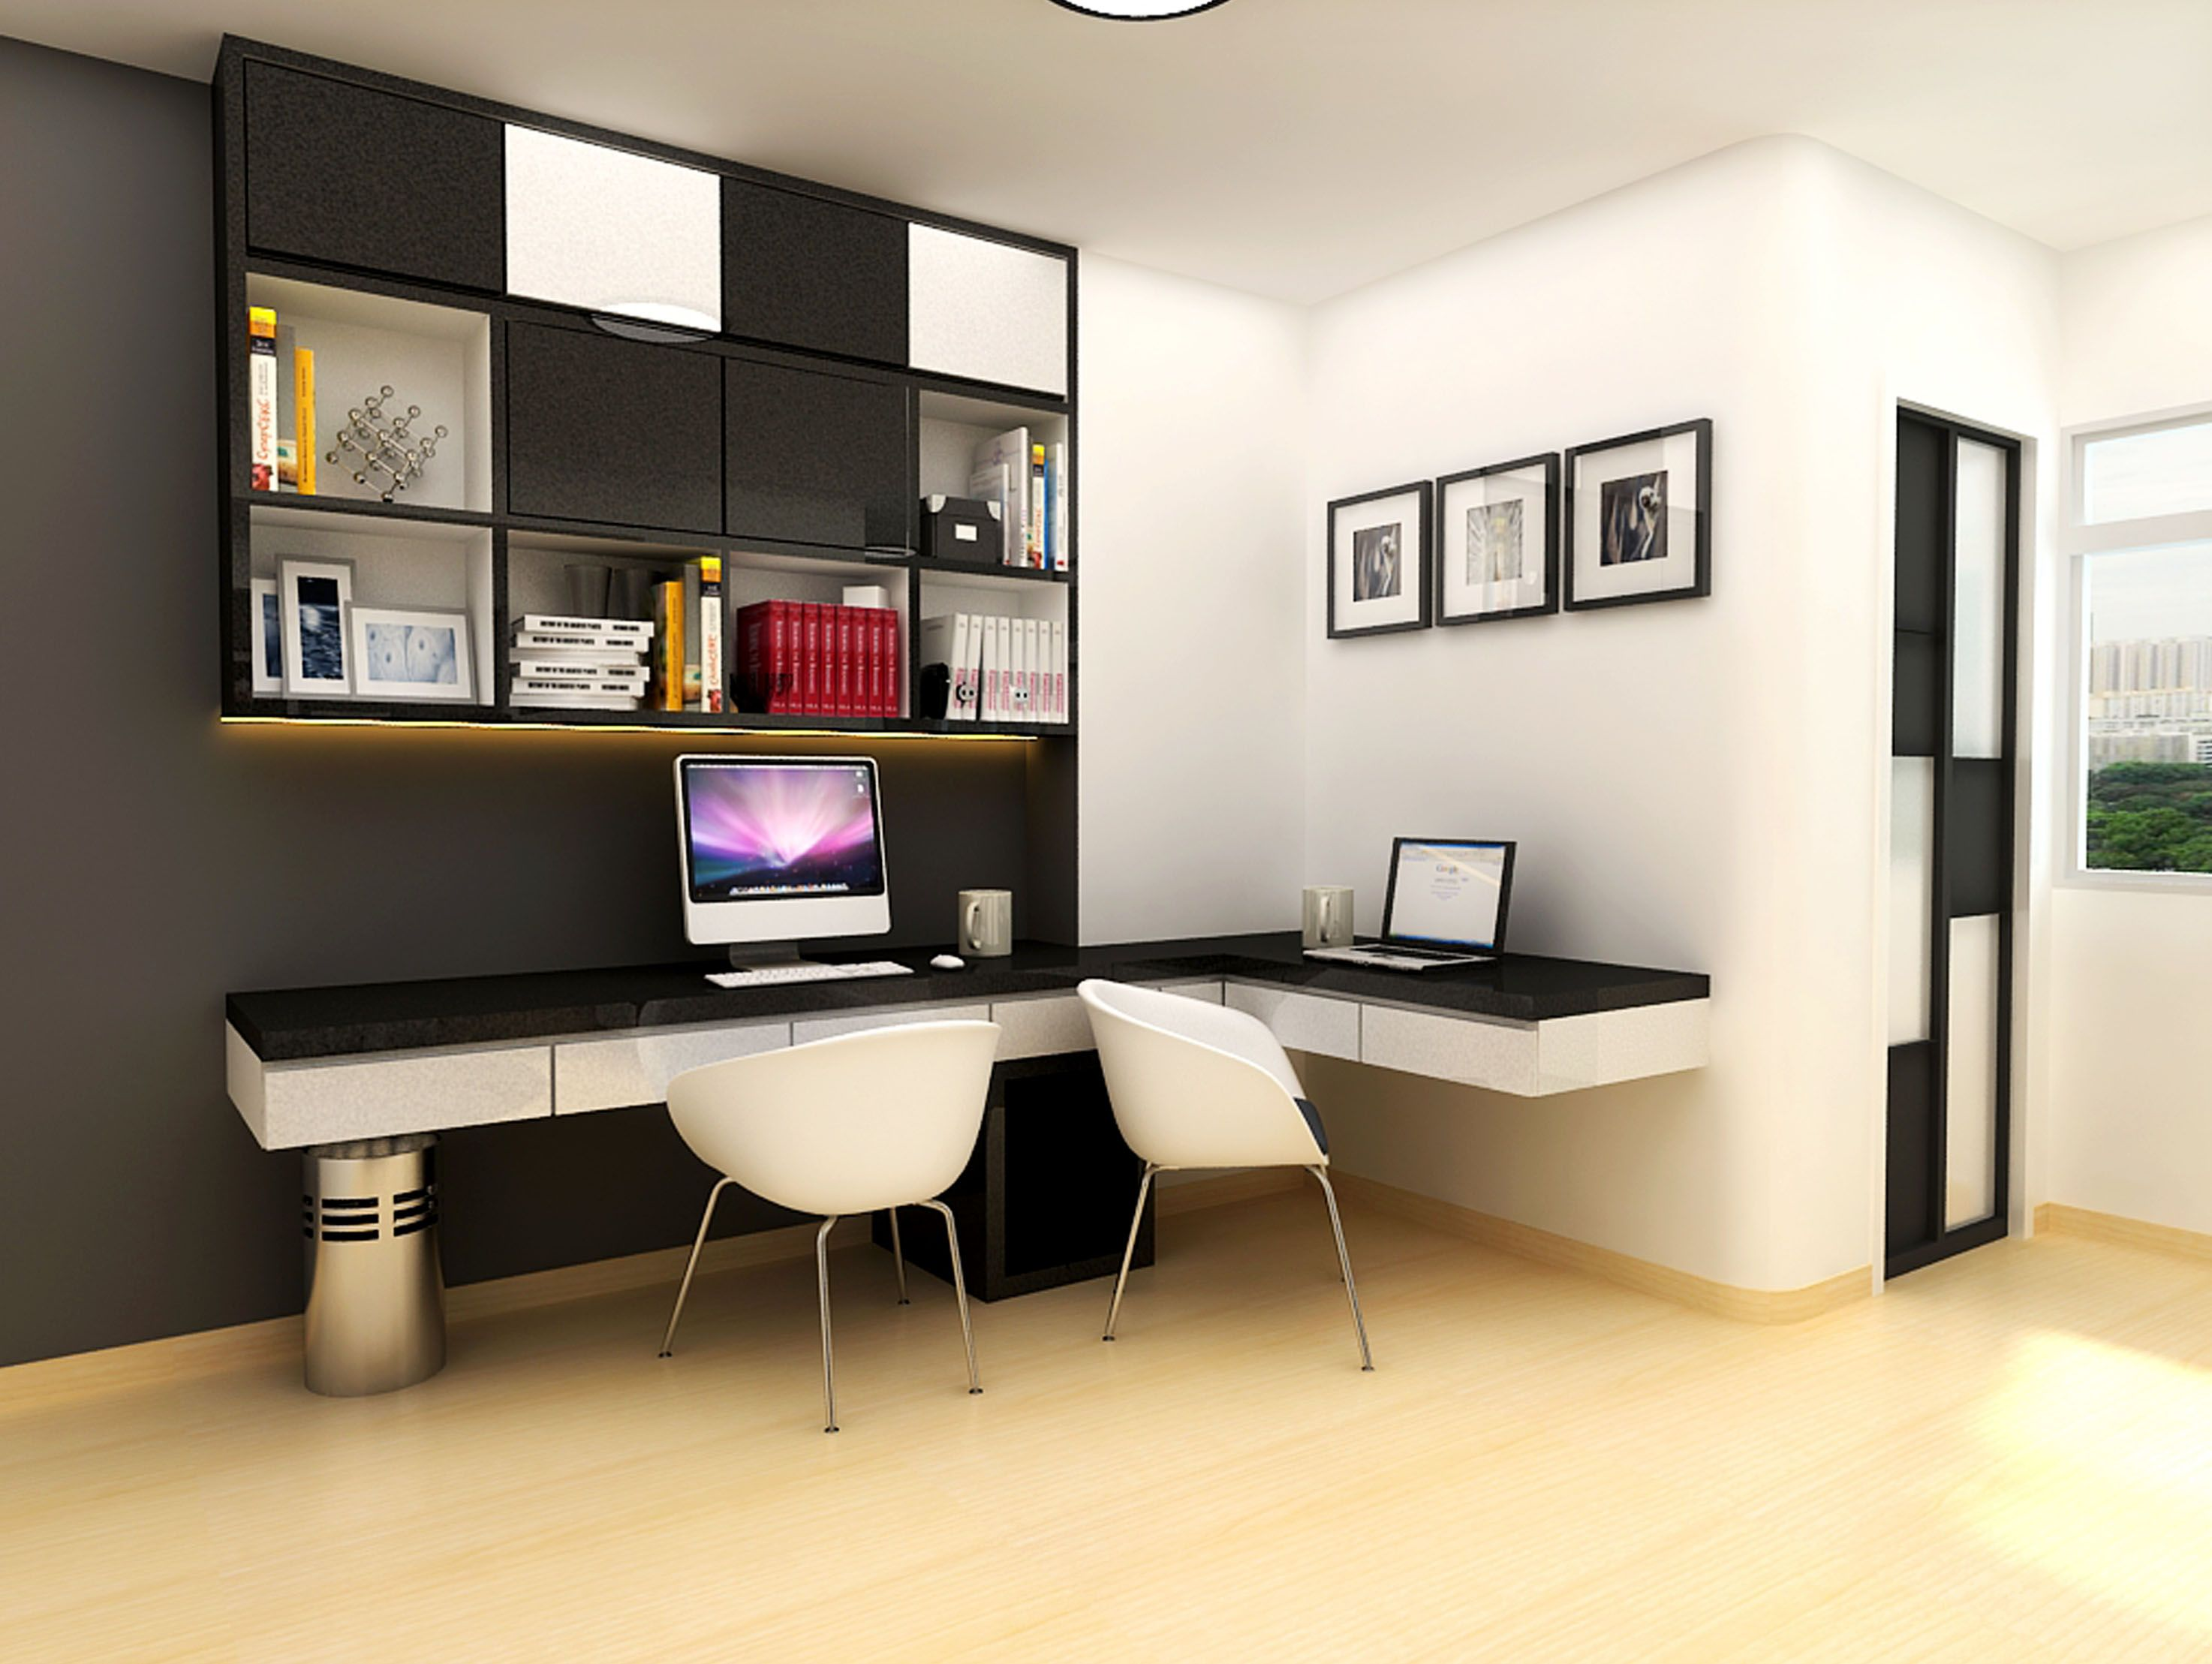 Image gallery study room - Study room furniture designe ...